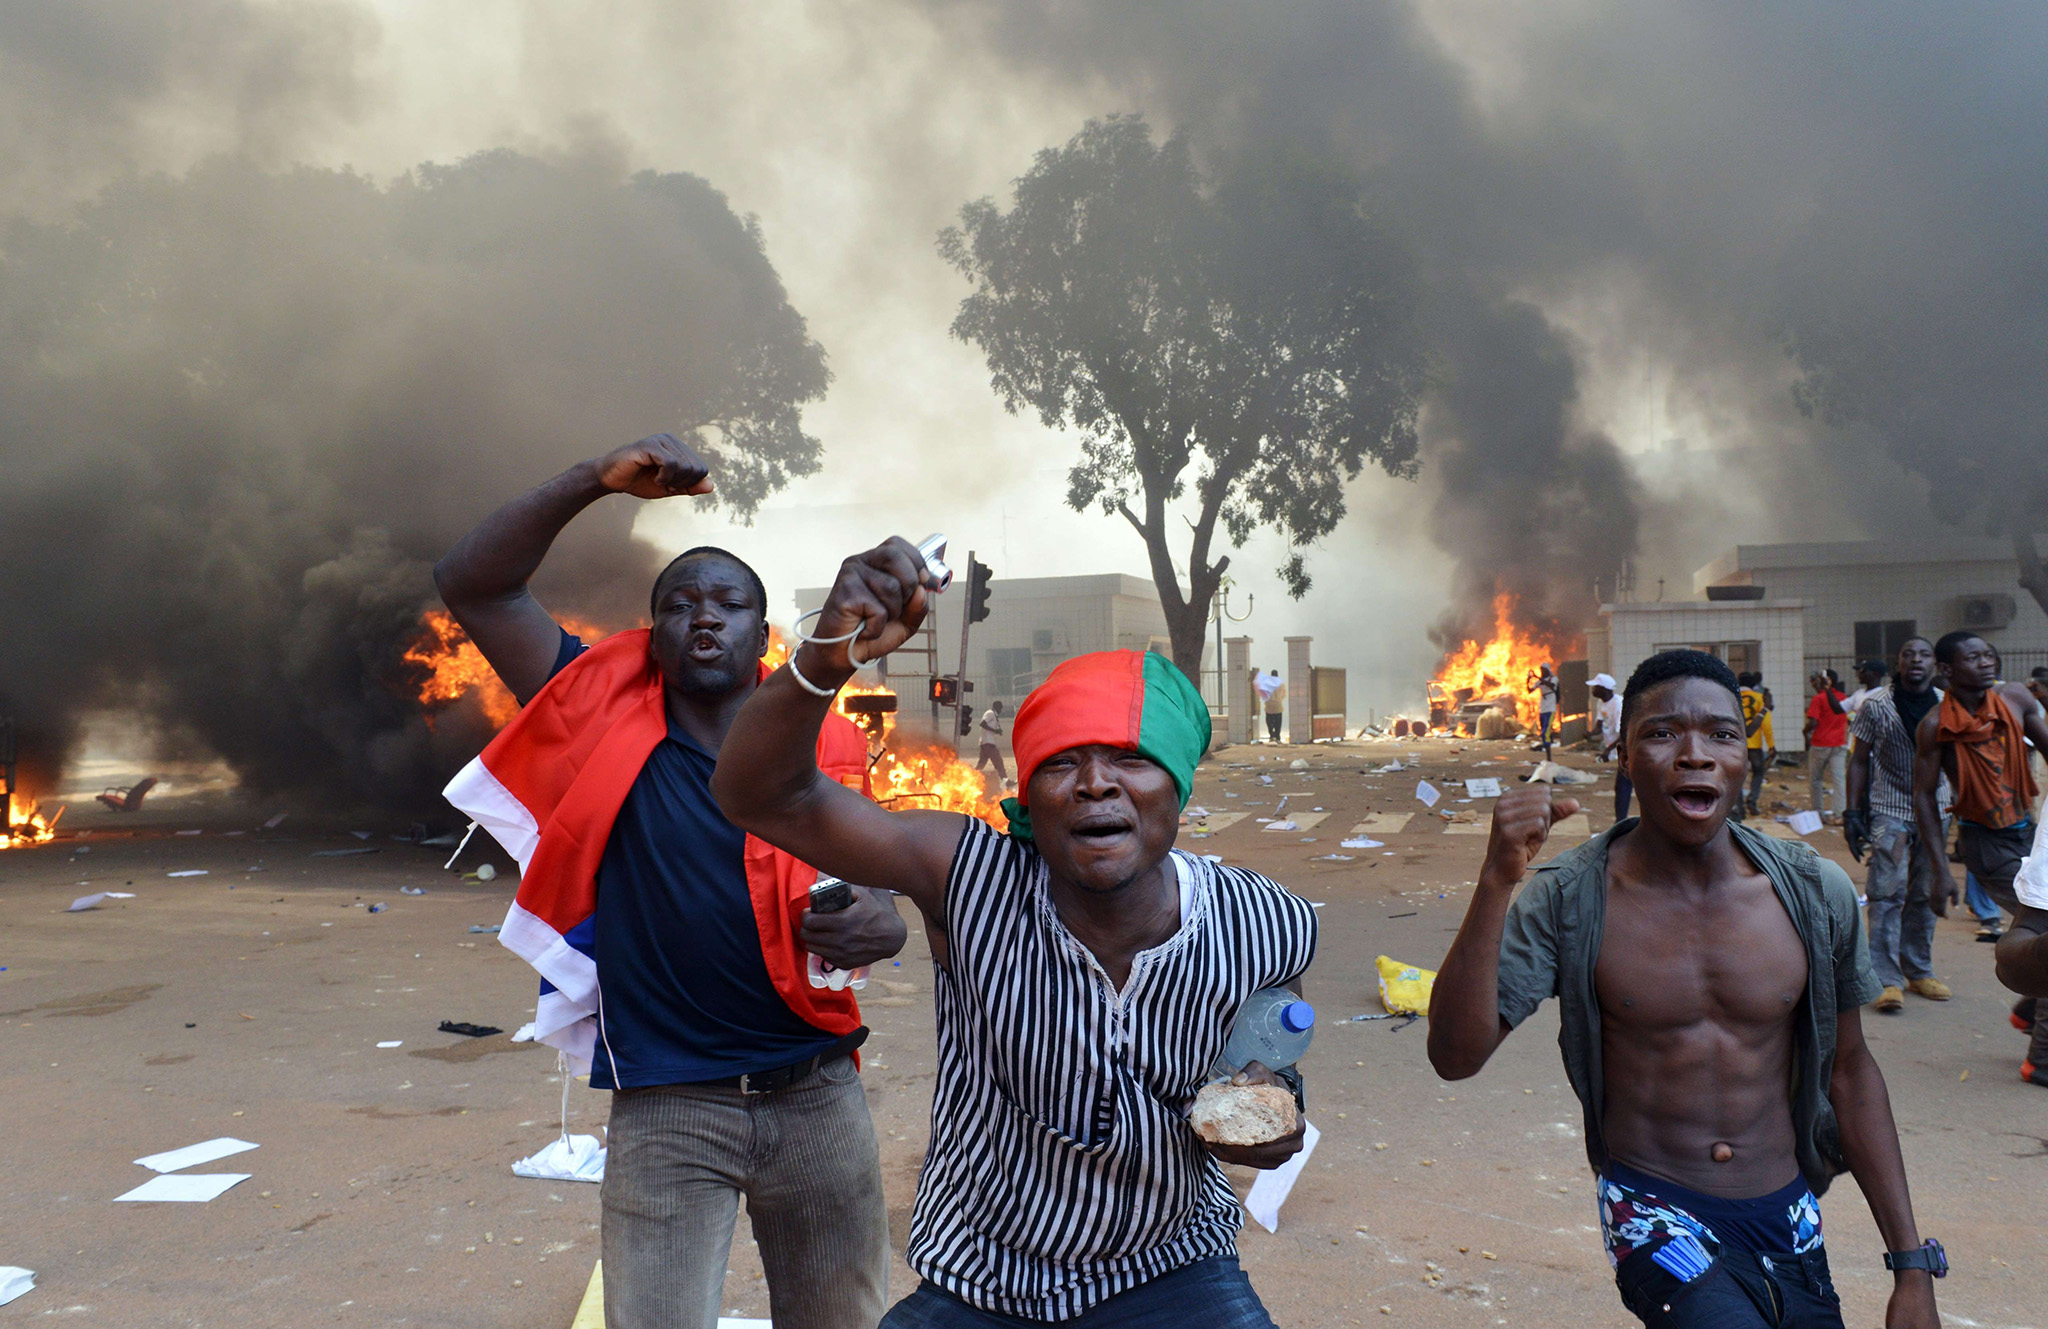 Men shout slogans in front of burning cars, near the Burkina Faso's Parliament where demonstrators set fire, on October 30, 2014 in Ouagadougou, as they protest against plans to change the constitution to allow President Blaise Compaore to extend his 27-year rule. Police had fired tear gas on protesters to try to prevent them from moving in on the National Assembly building in the capital Ouagadougou ahead of a vote on the controversial legislation. But about 1,500 people managed to break through the security cordon and were ransacking parliament, according to AFP correspondents. Protesters ransacked offices, setting fire to documents and stealing computer equipment, and set fire to cars outside. AFP PHOTO / ISSOUF SANOGOISSOUF SANOGO/AFP/Getty Images